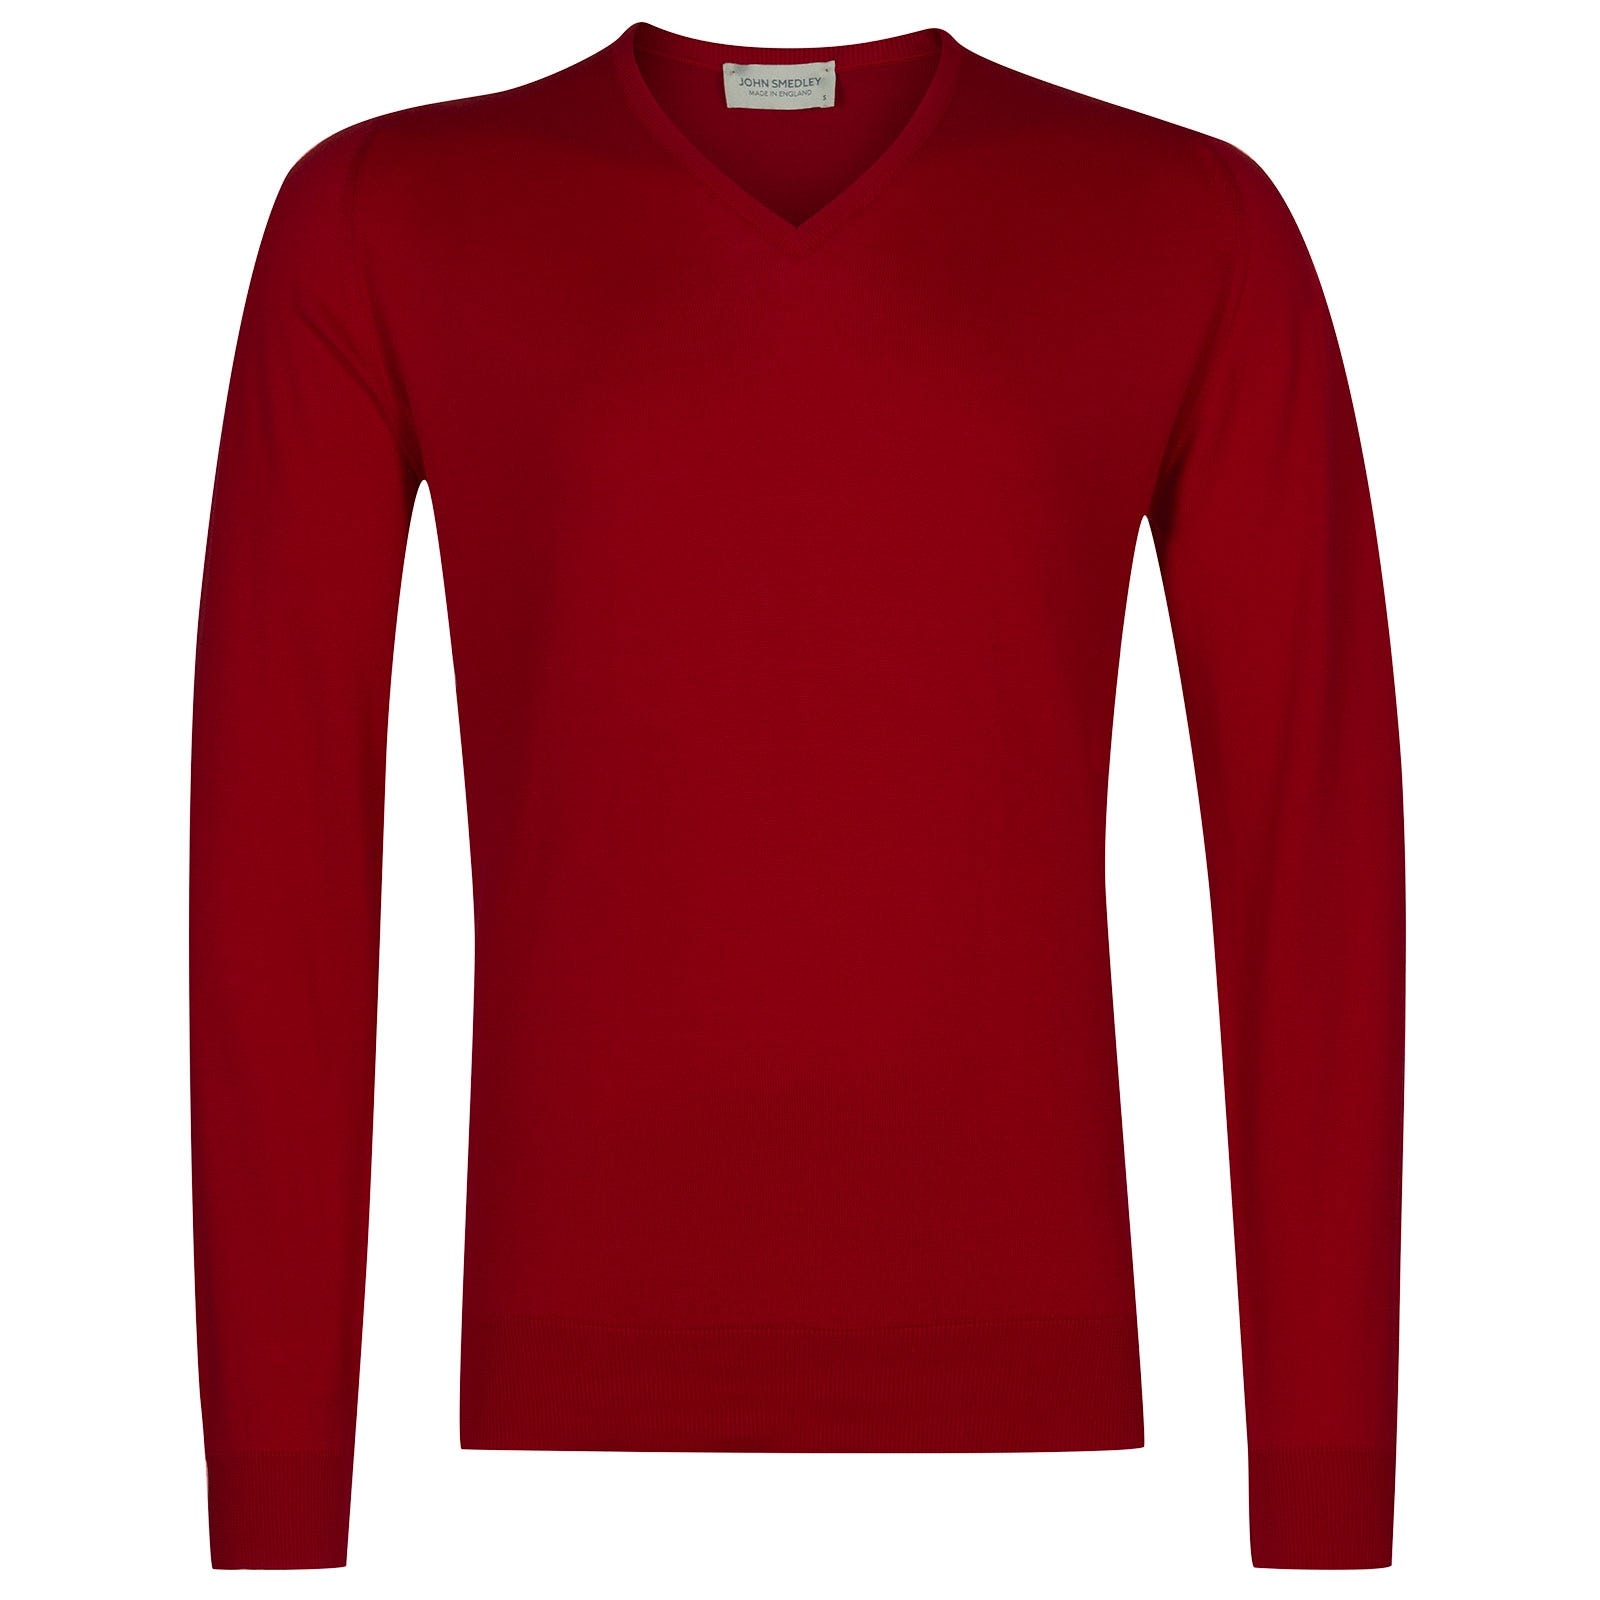 John Smedley Woburn Sea Island Cotton Pullover in Dandy Red-S